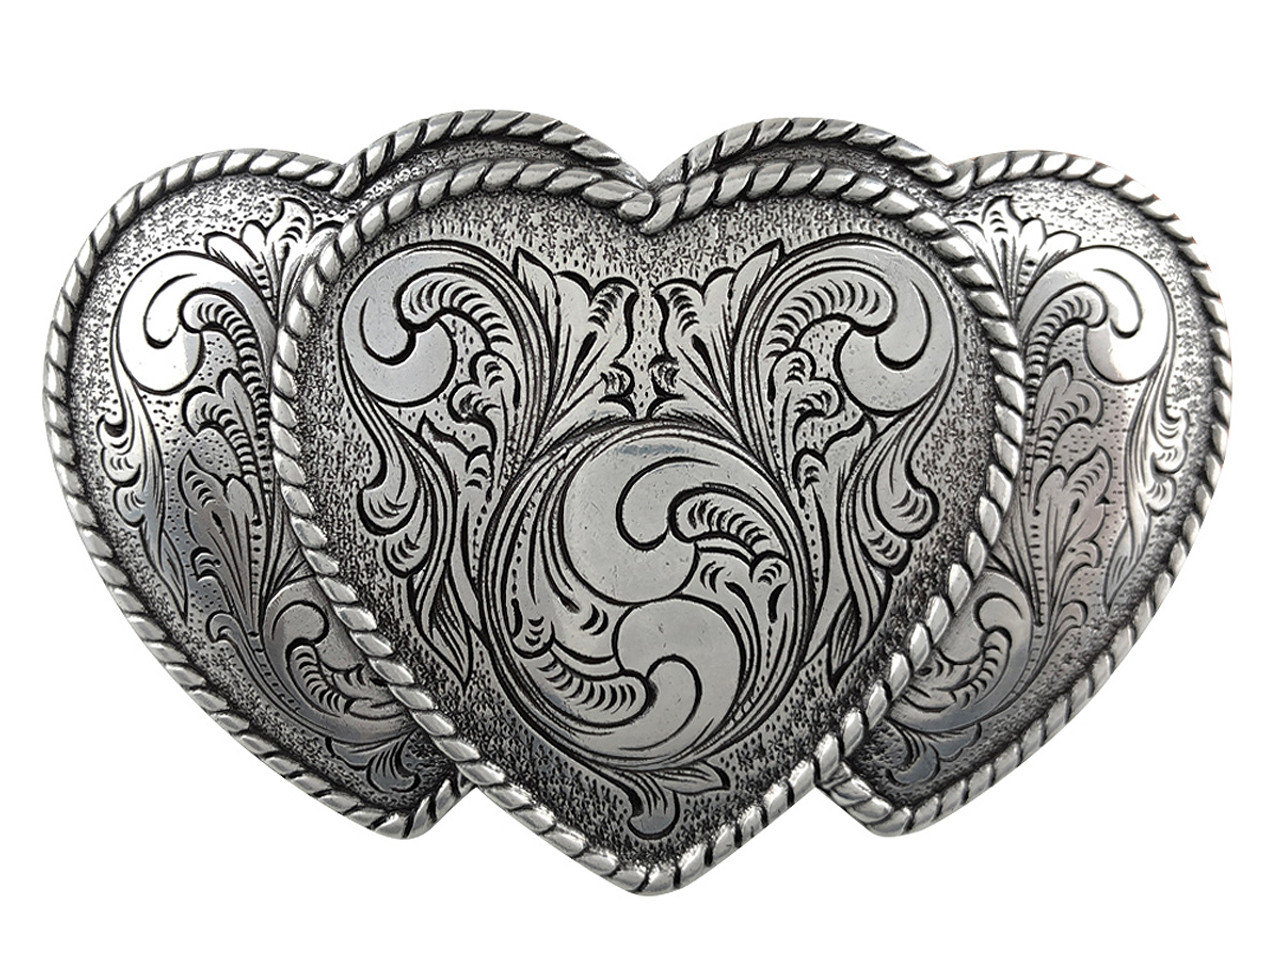 WESTERN FLAIR H//MADE ENGRAVED SILVER GOLD RODEO COWBOY BELT BUCKLE HEART w HORSE